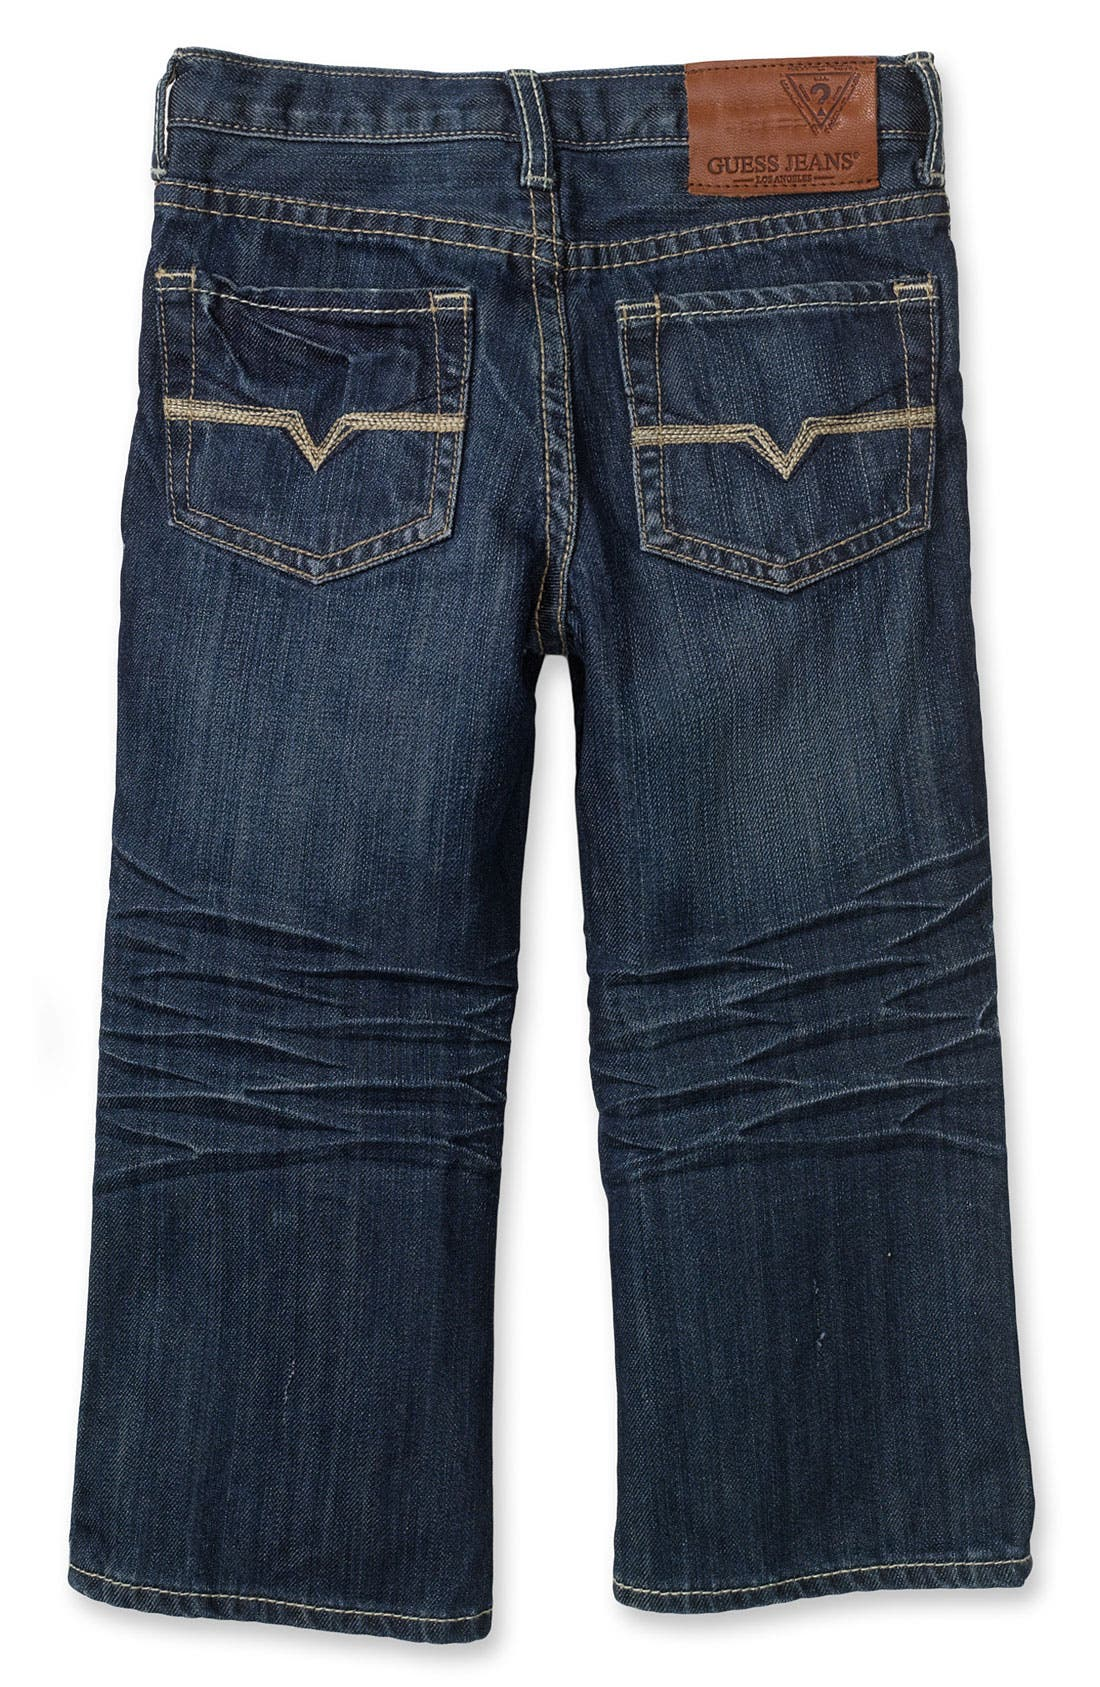 Find great deals on eBay for guess jeans kids. Shop with confidence.